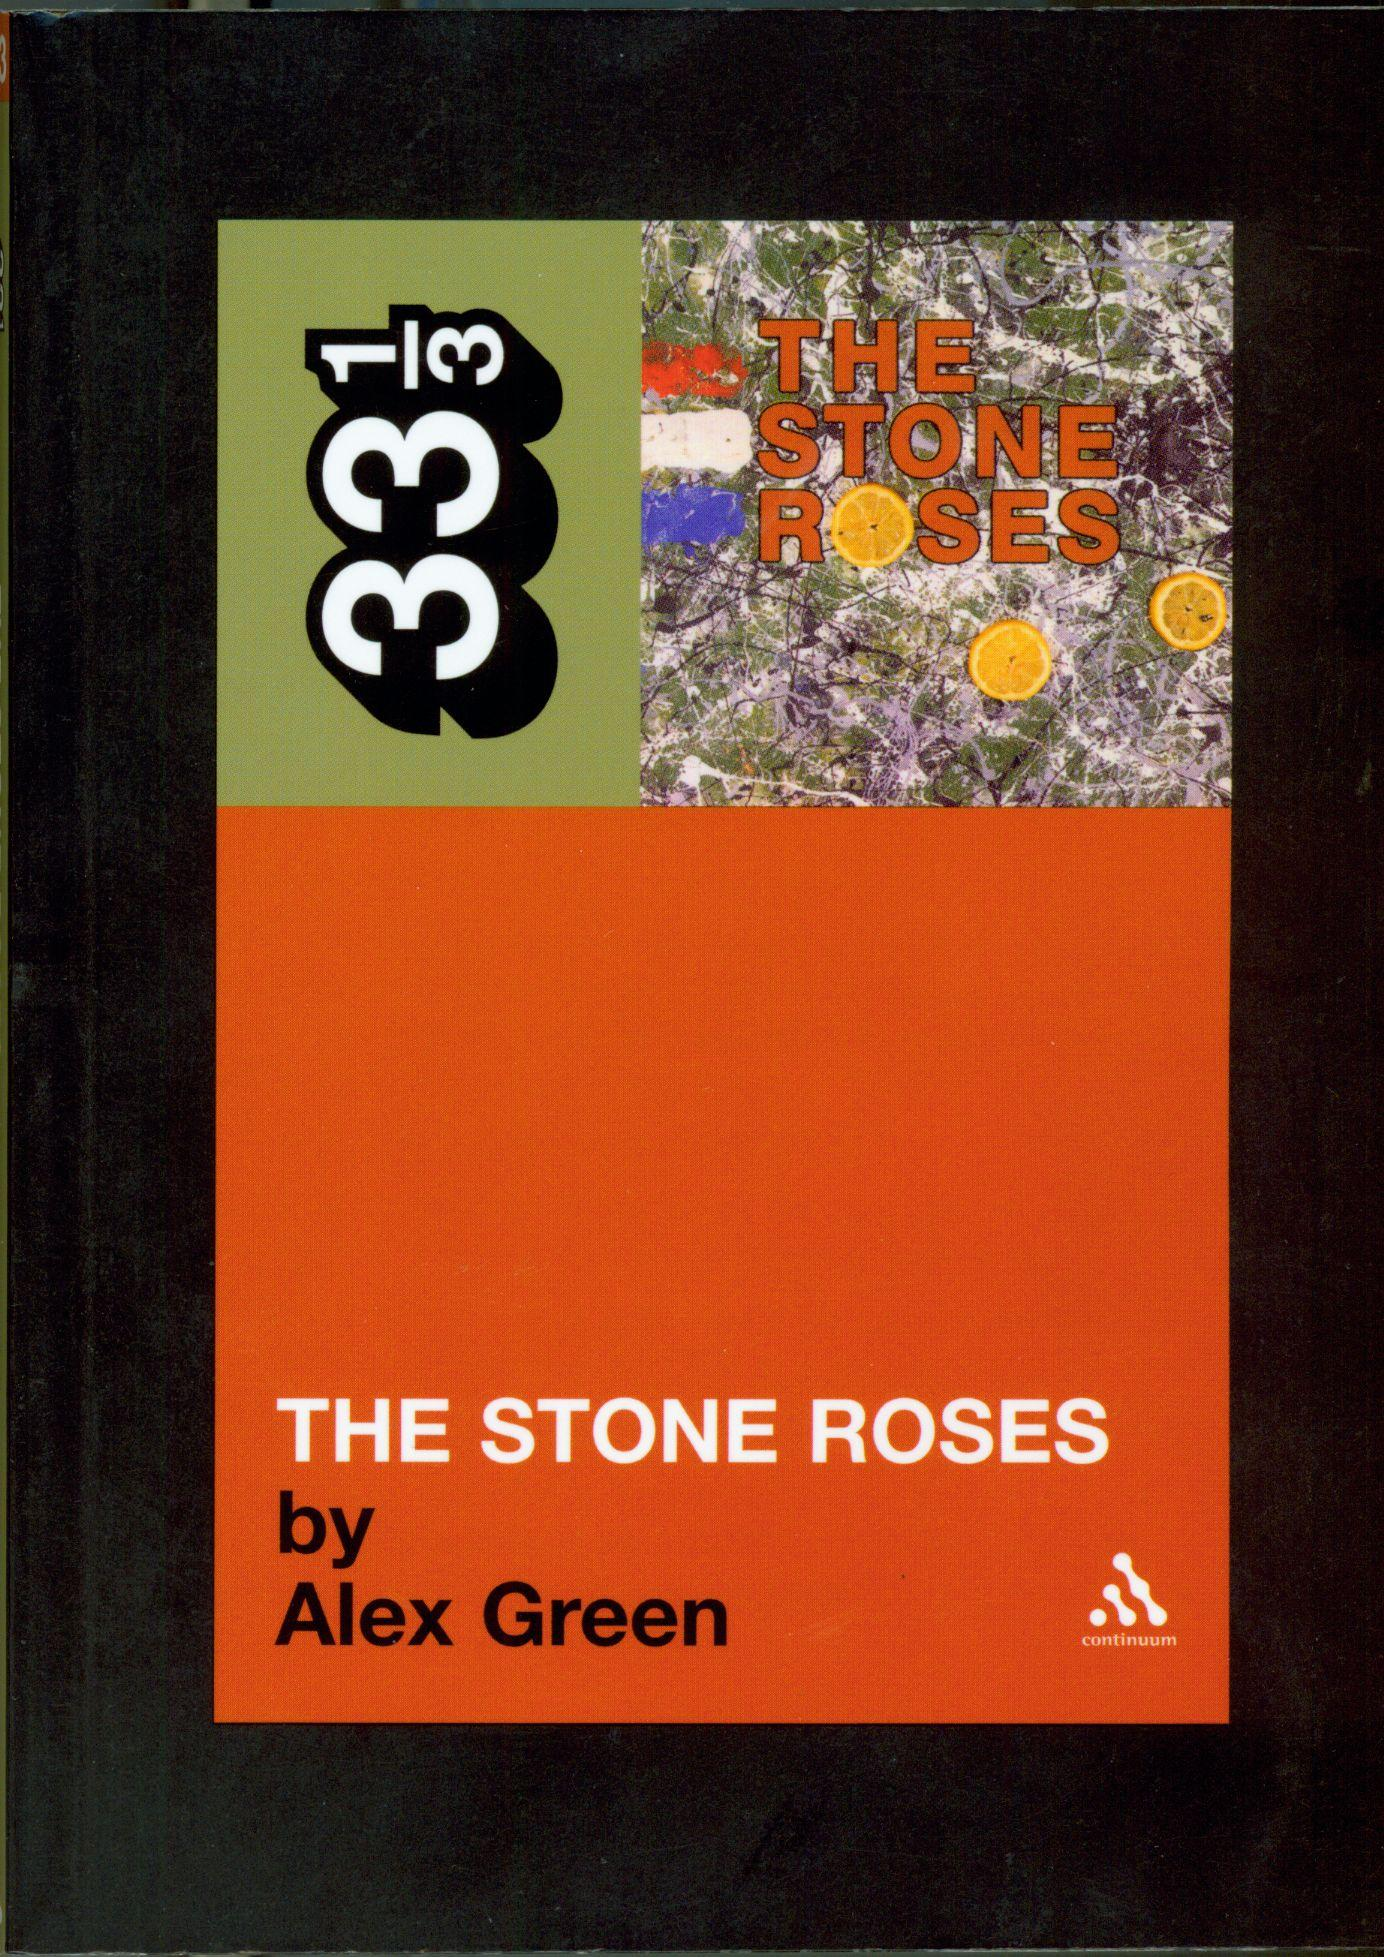 THE STONE ROSES BY ALEX GREEN